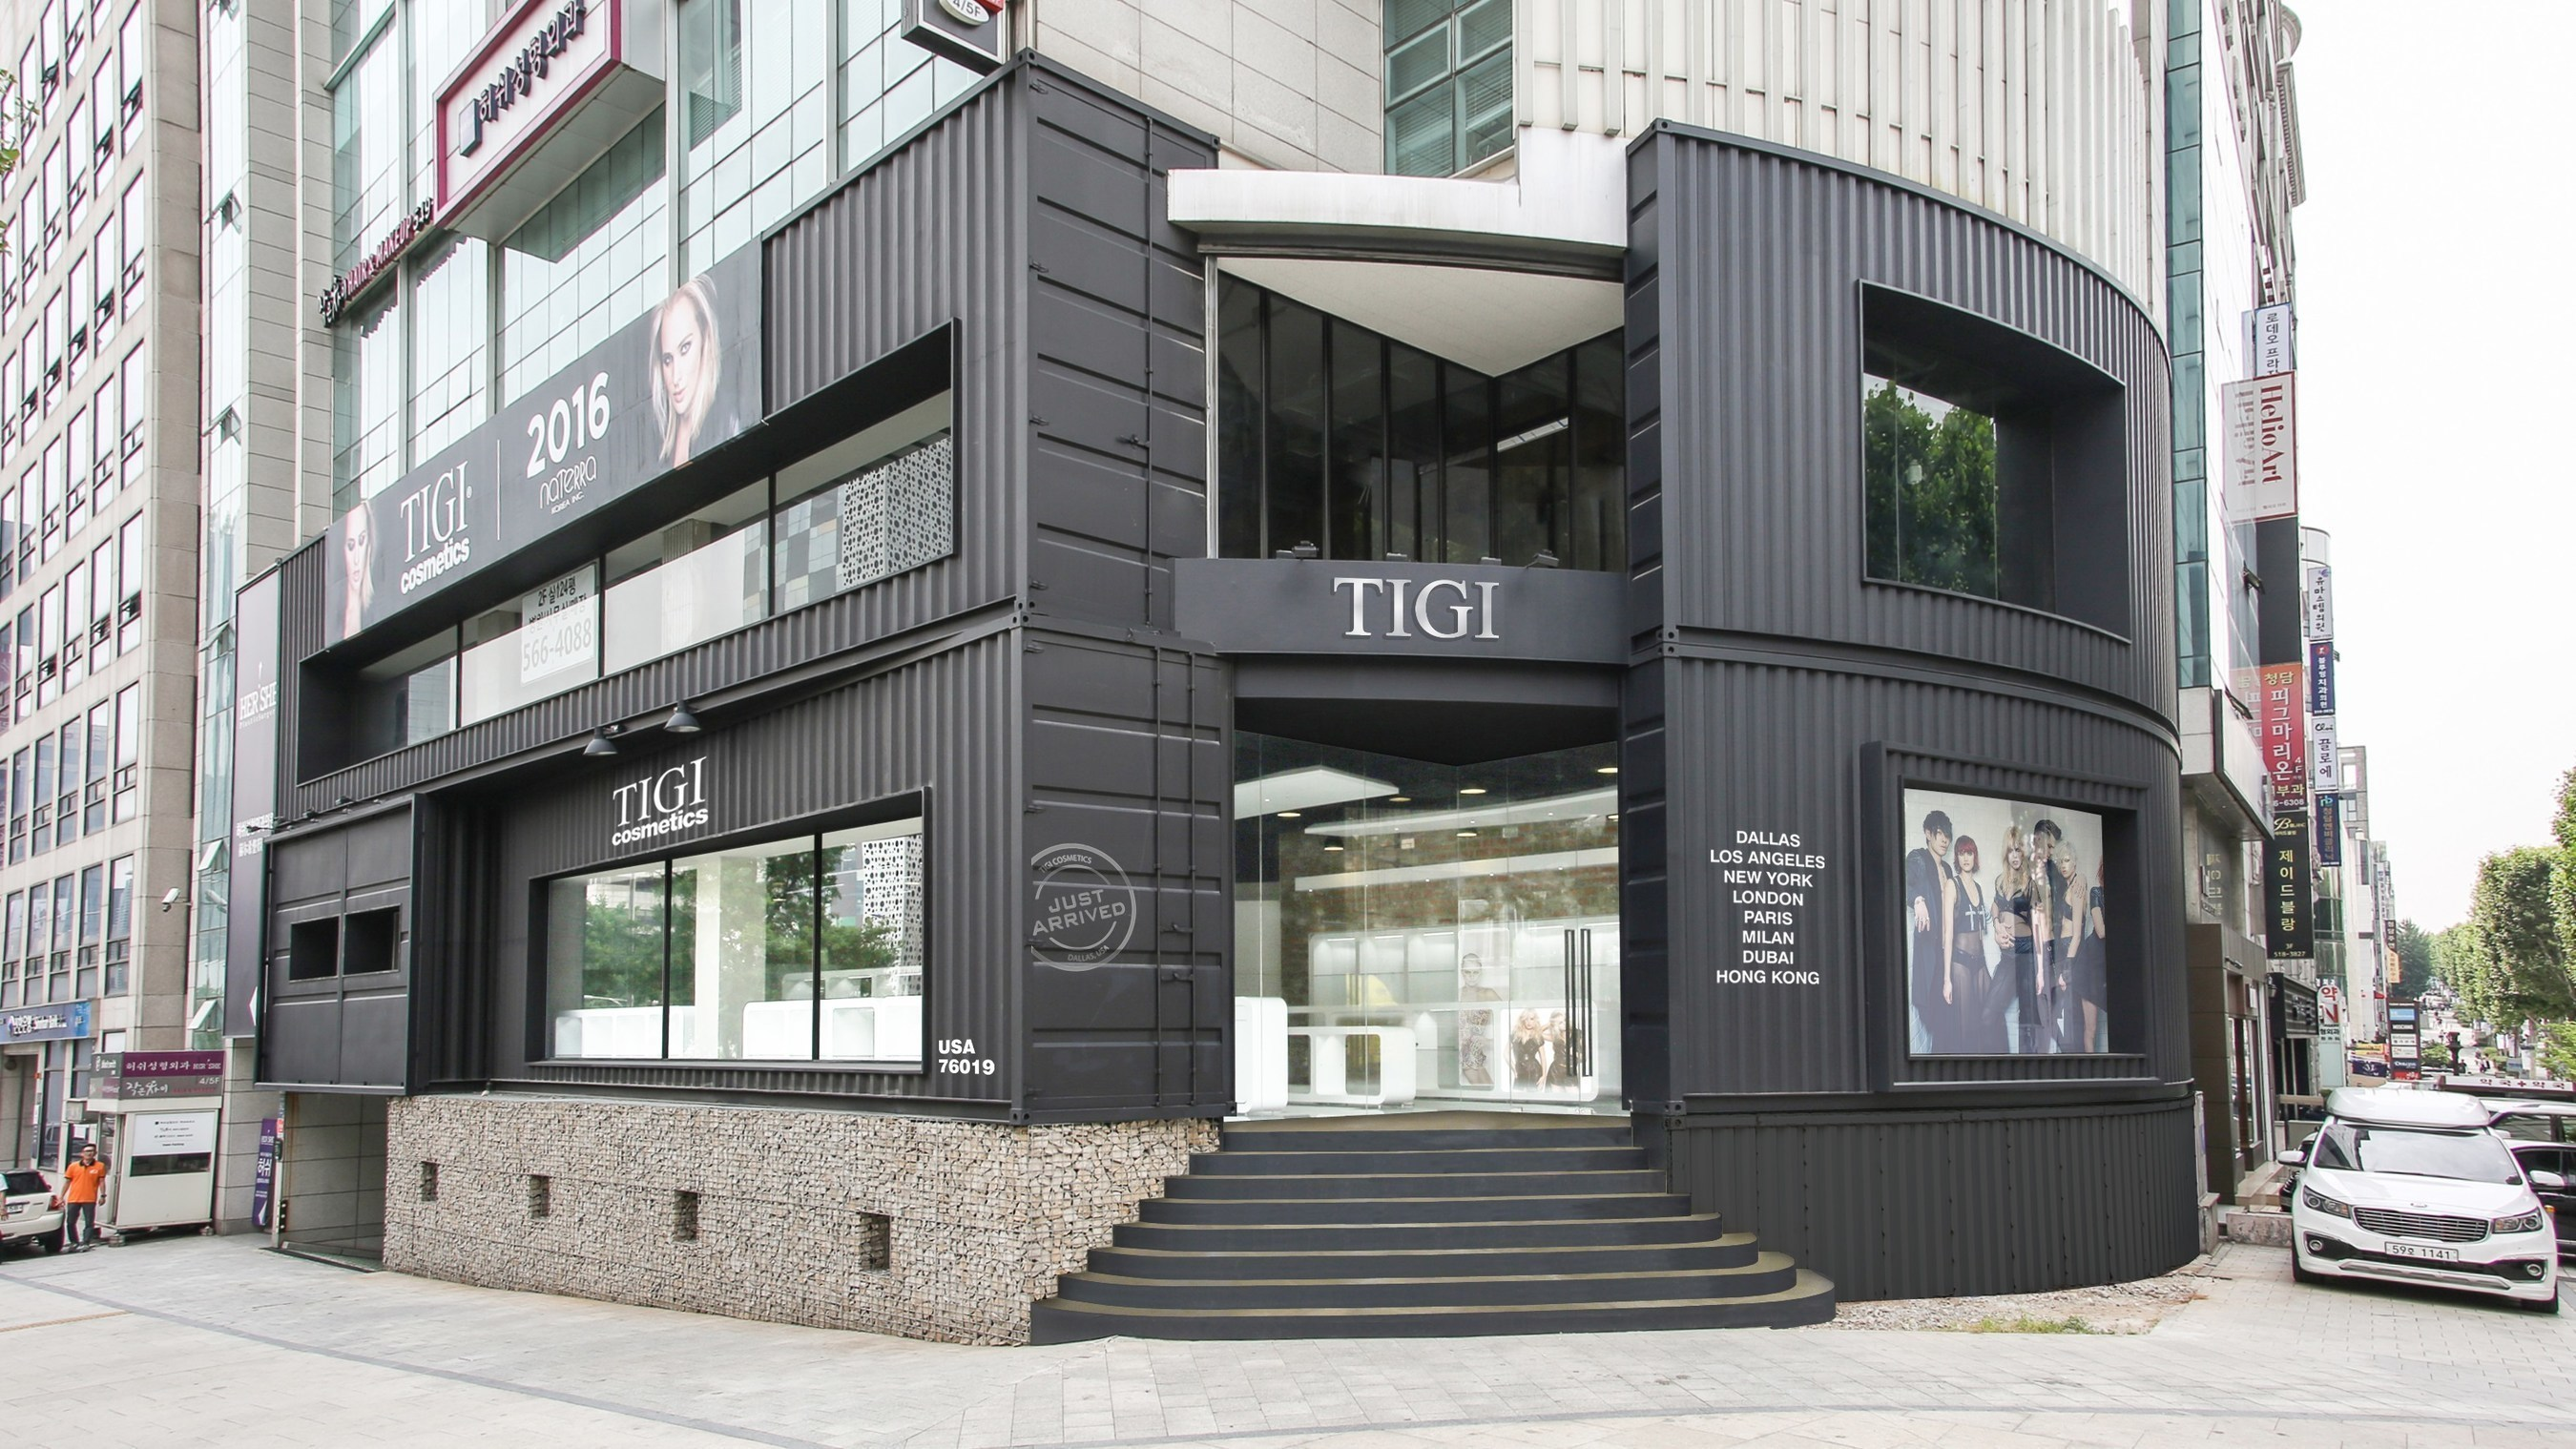 U.S. beauty and personal care company Naterra announces the July 1, 2016 opening of the first Naterra Korea store. The impressive new retail space is located on the luxury high-street Cheongdam crossroads and will serve as the official Korean flagship store for Naterra and the home of TIGI, the popular global professional cosmetics and hair care brand. (Photo provided by Naterra)